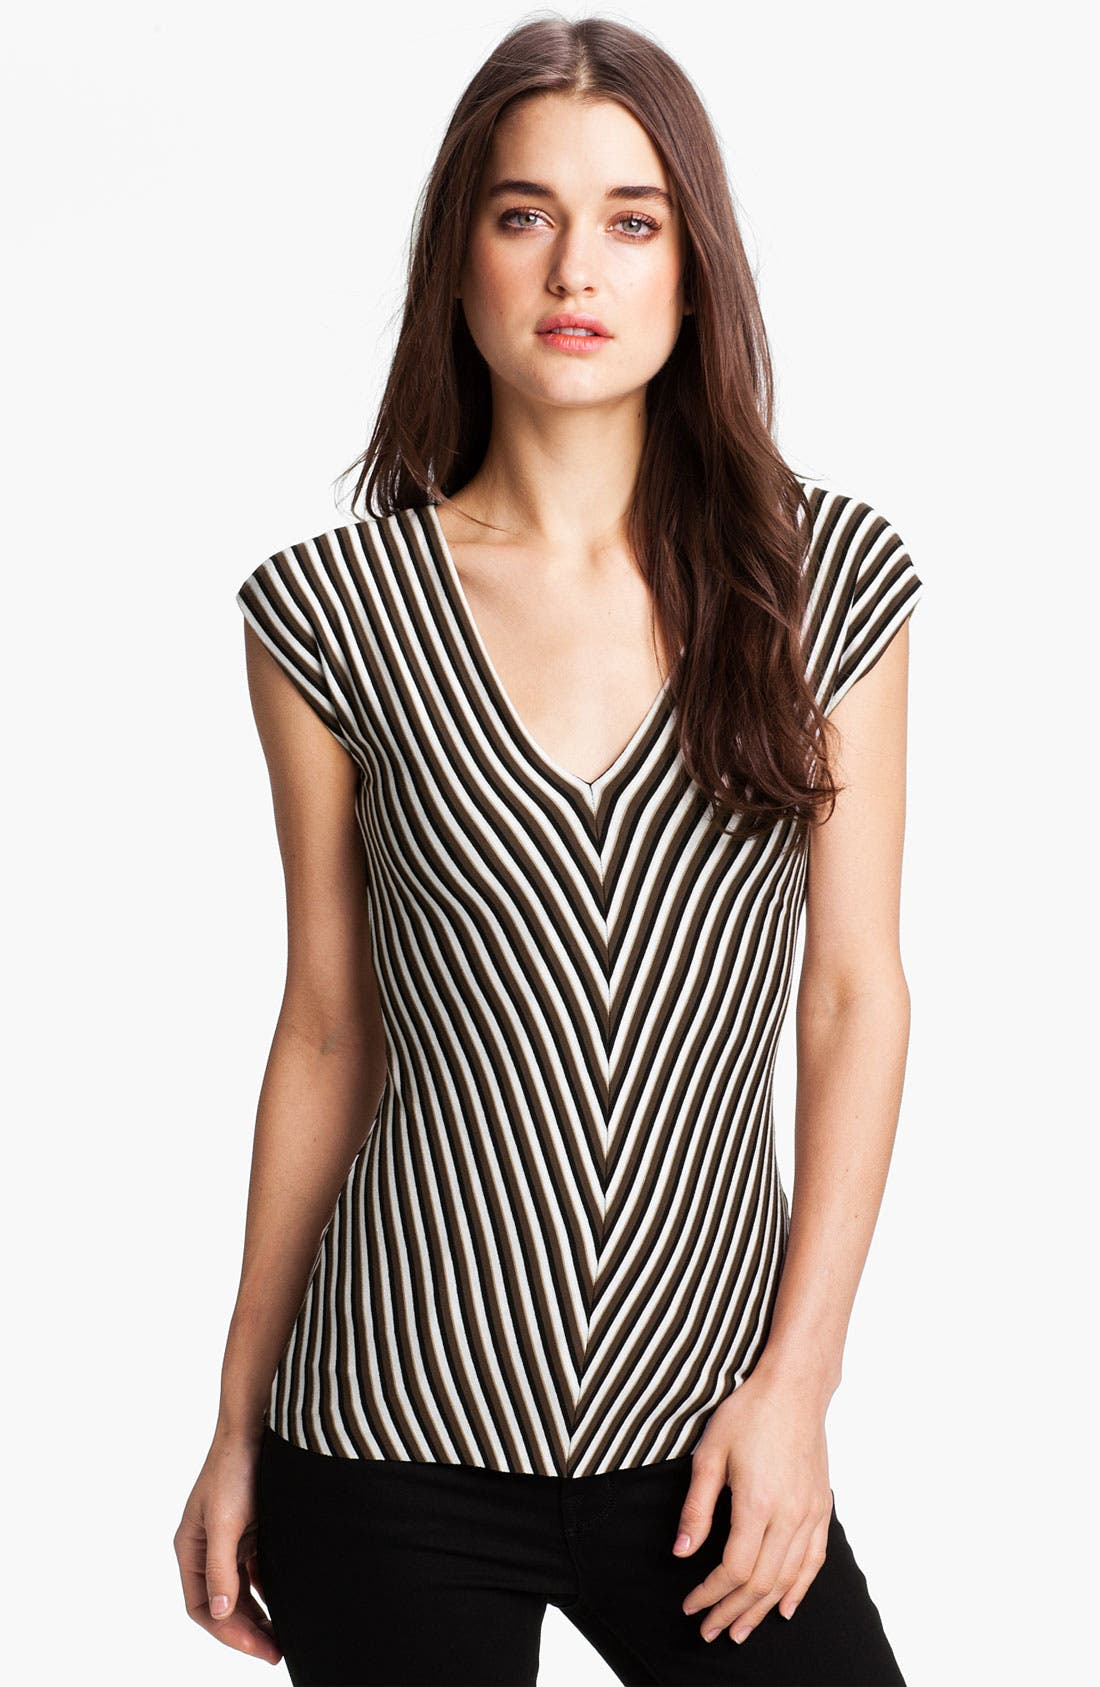 Alternate Image 1 Selected - Bailey 44 'Operation' Chevron Stripe Top